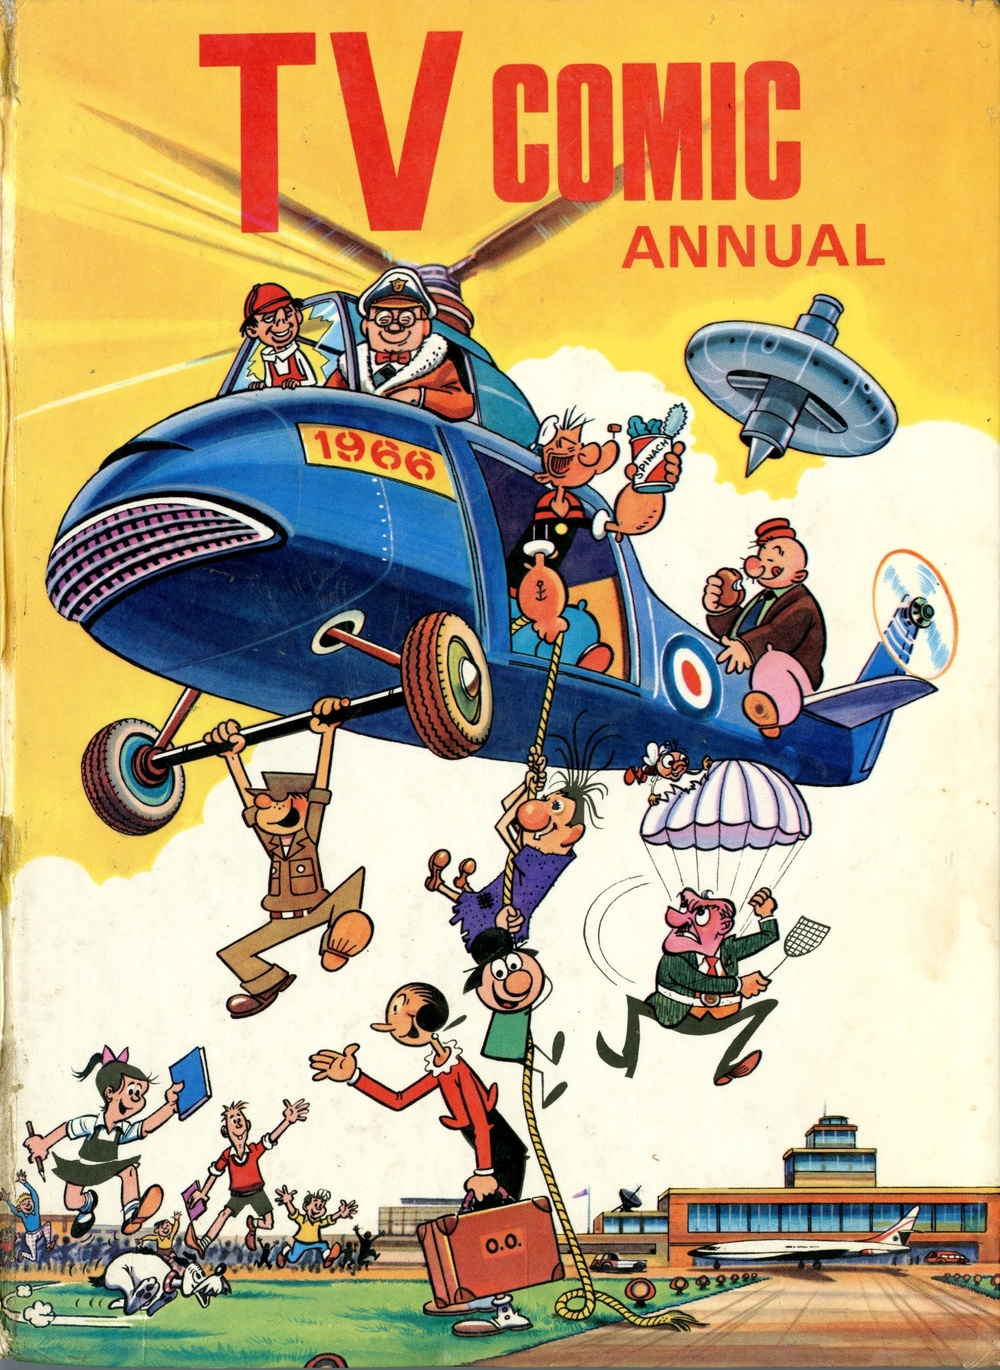 TV Comic Annual 1966 (published 1965), which includes Doctor Who comic strips